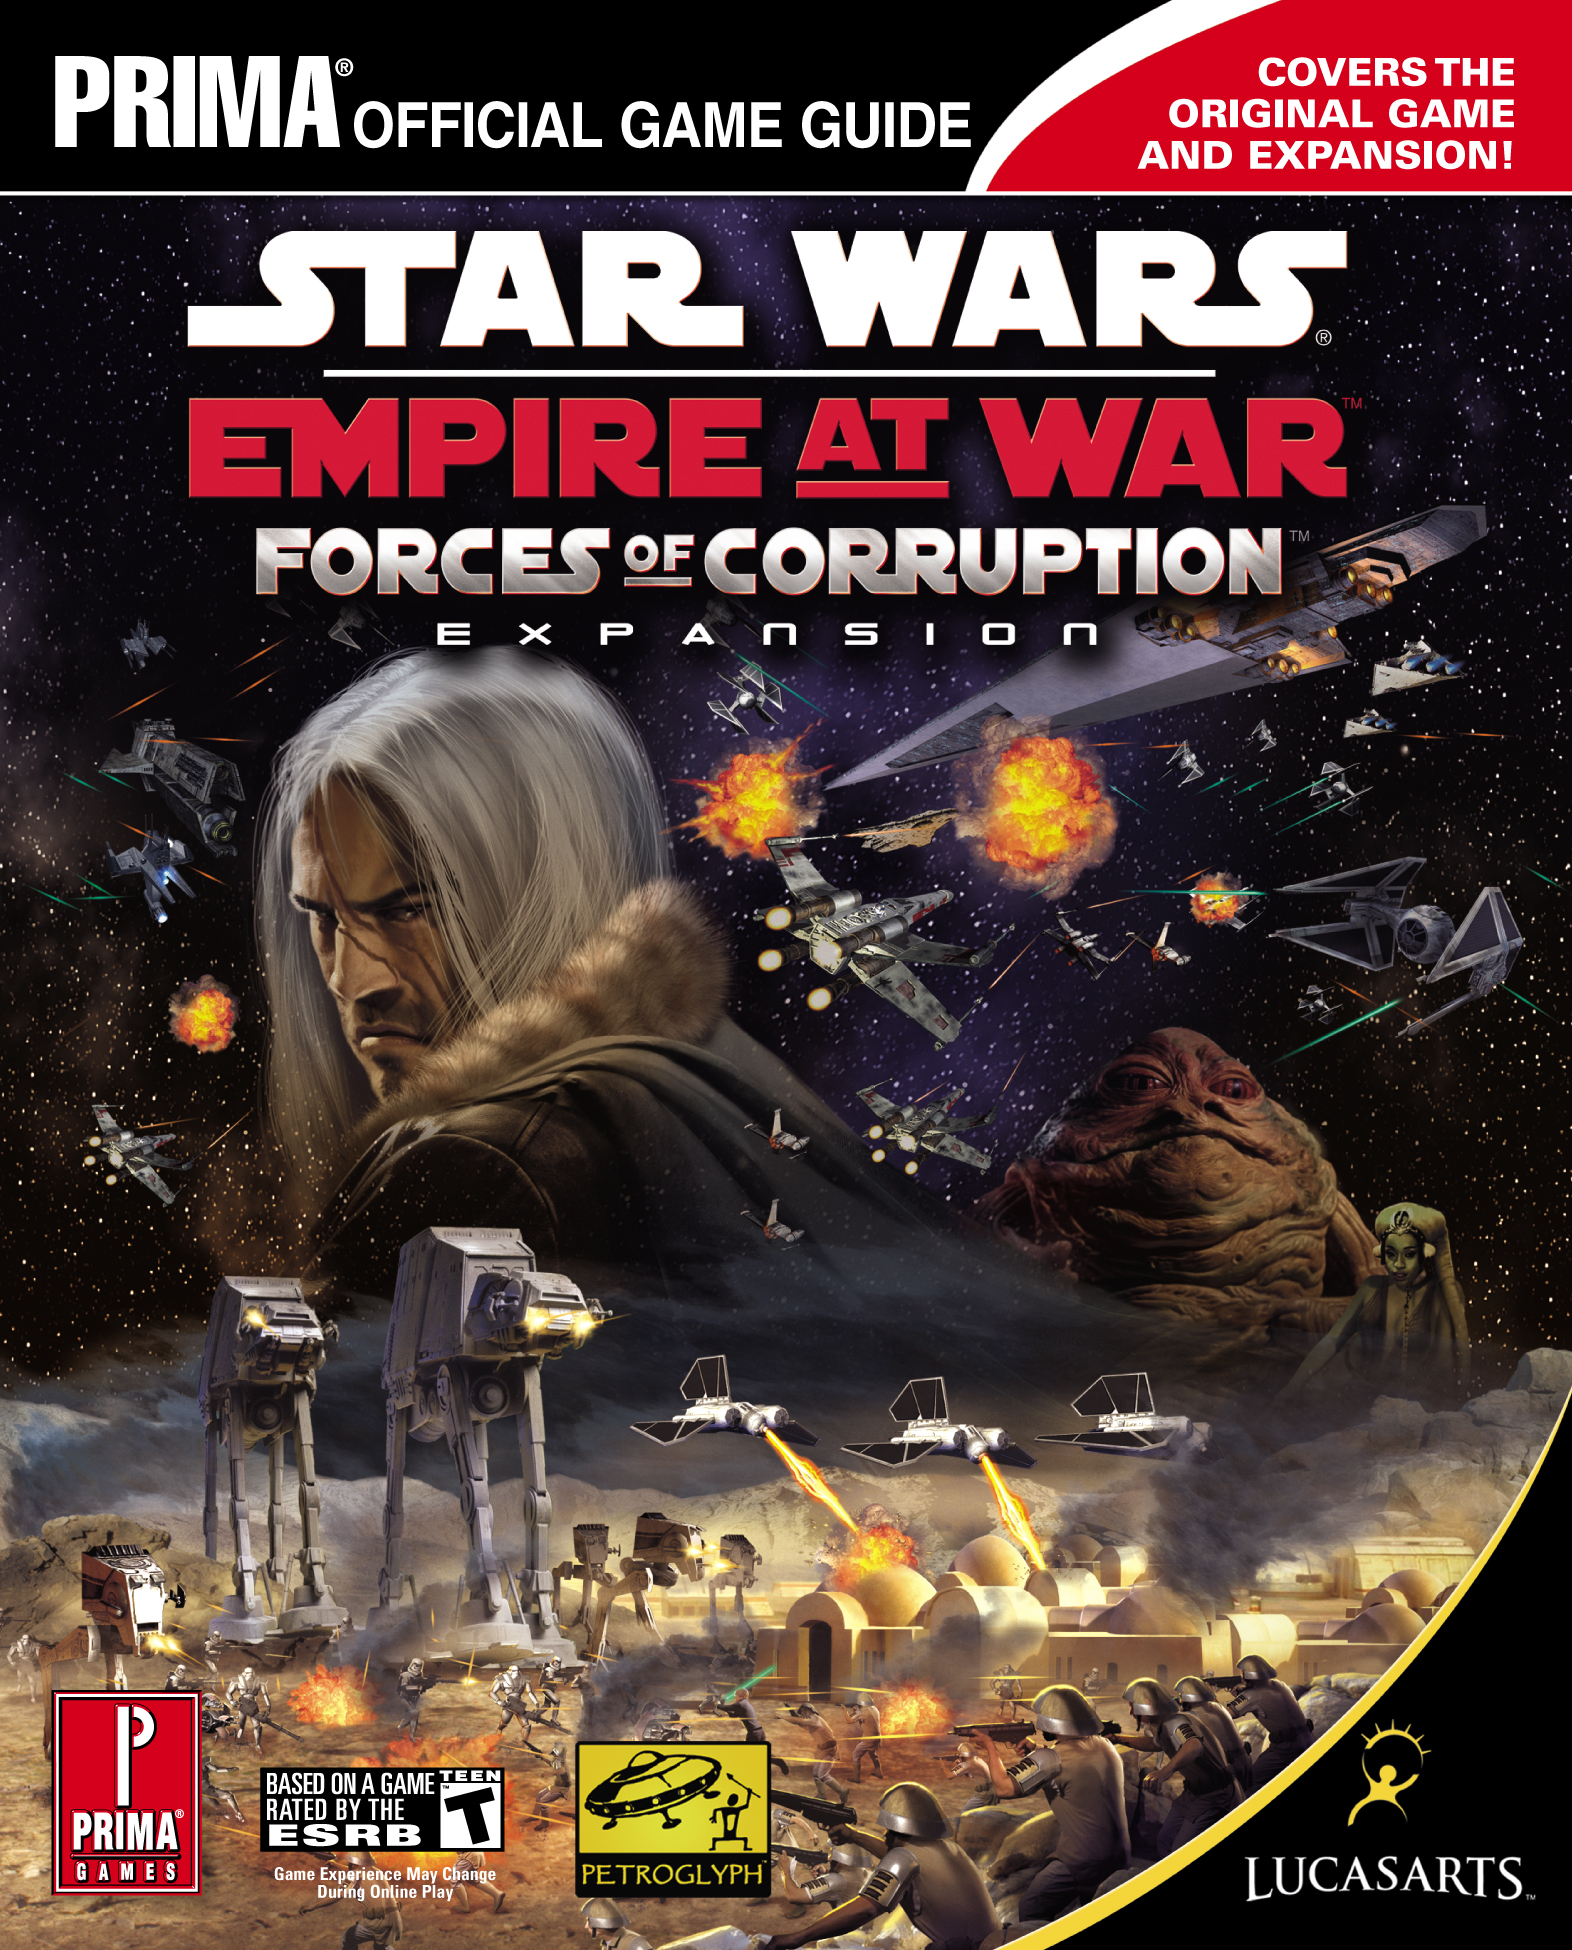 Star Wars: Empire at War: Forces of Corruption Expansion: Prima Official Game Guide